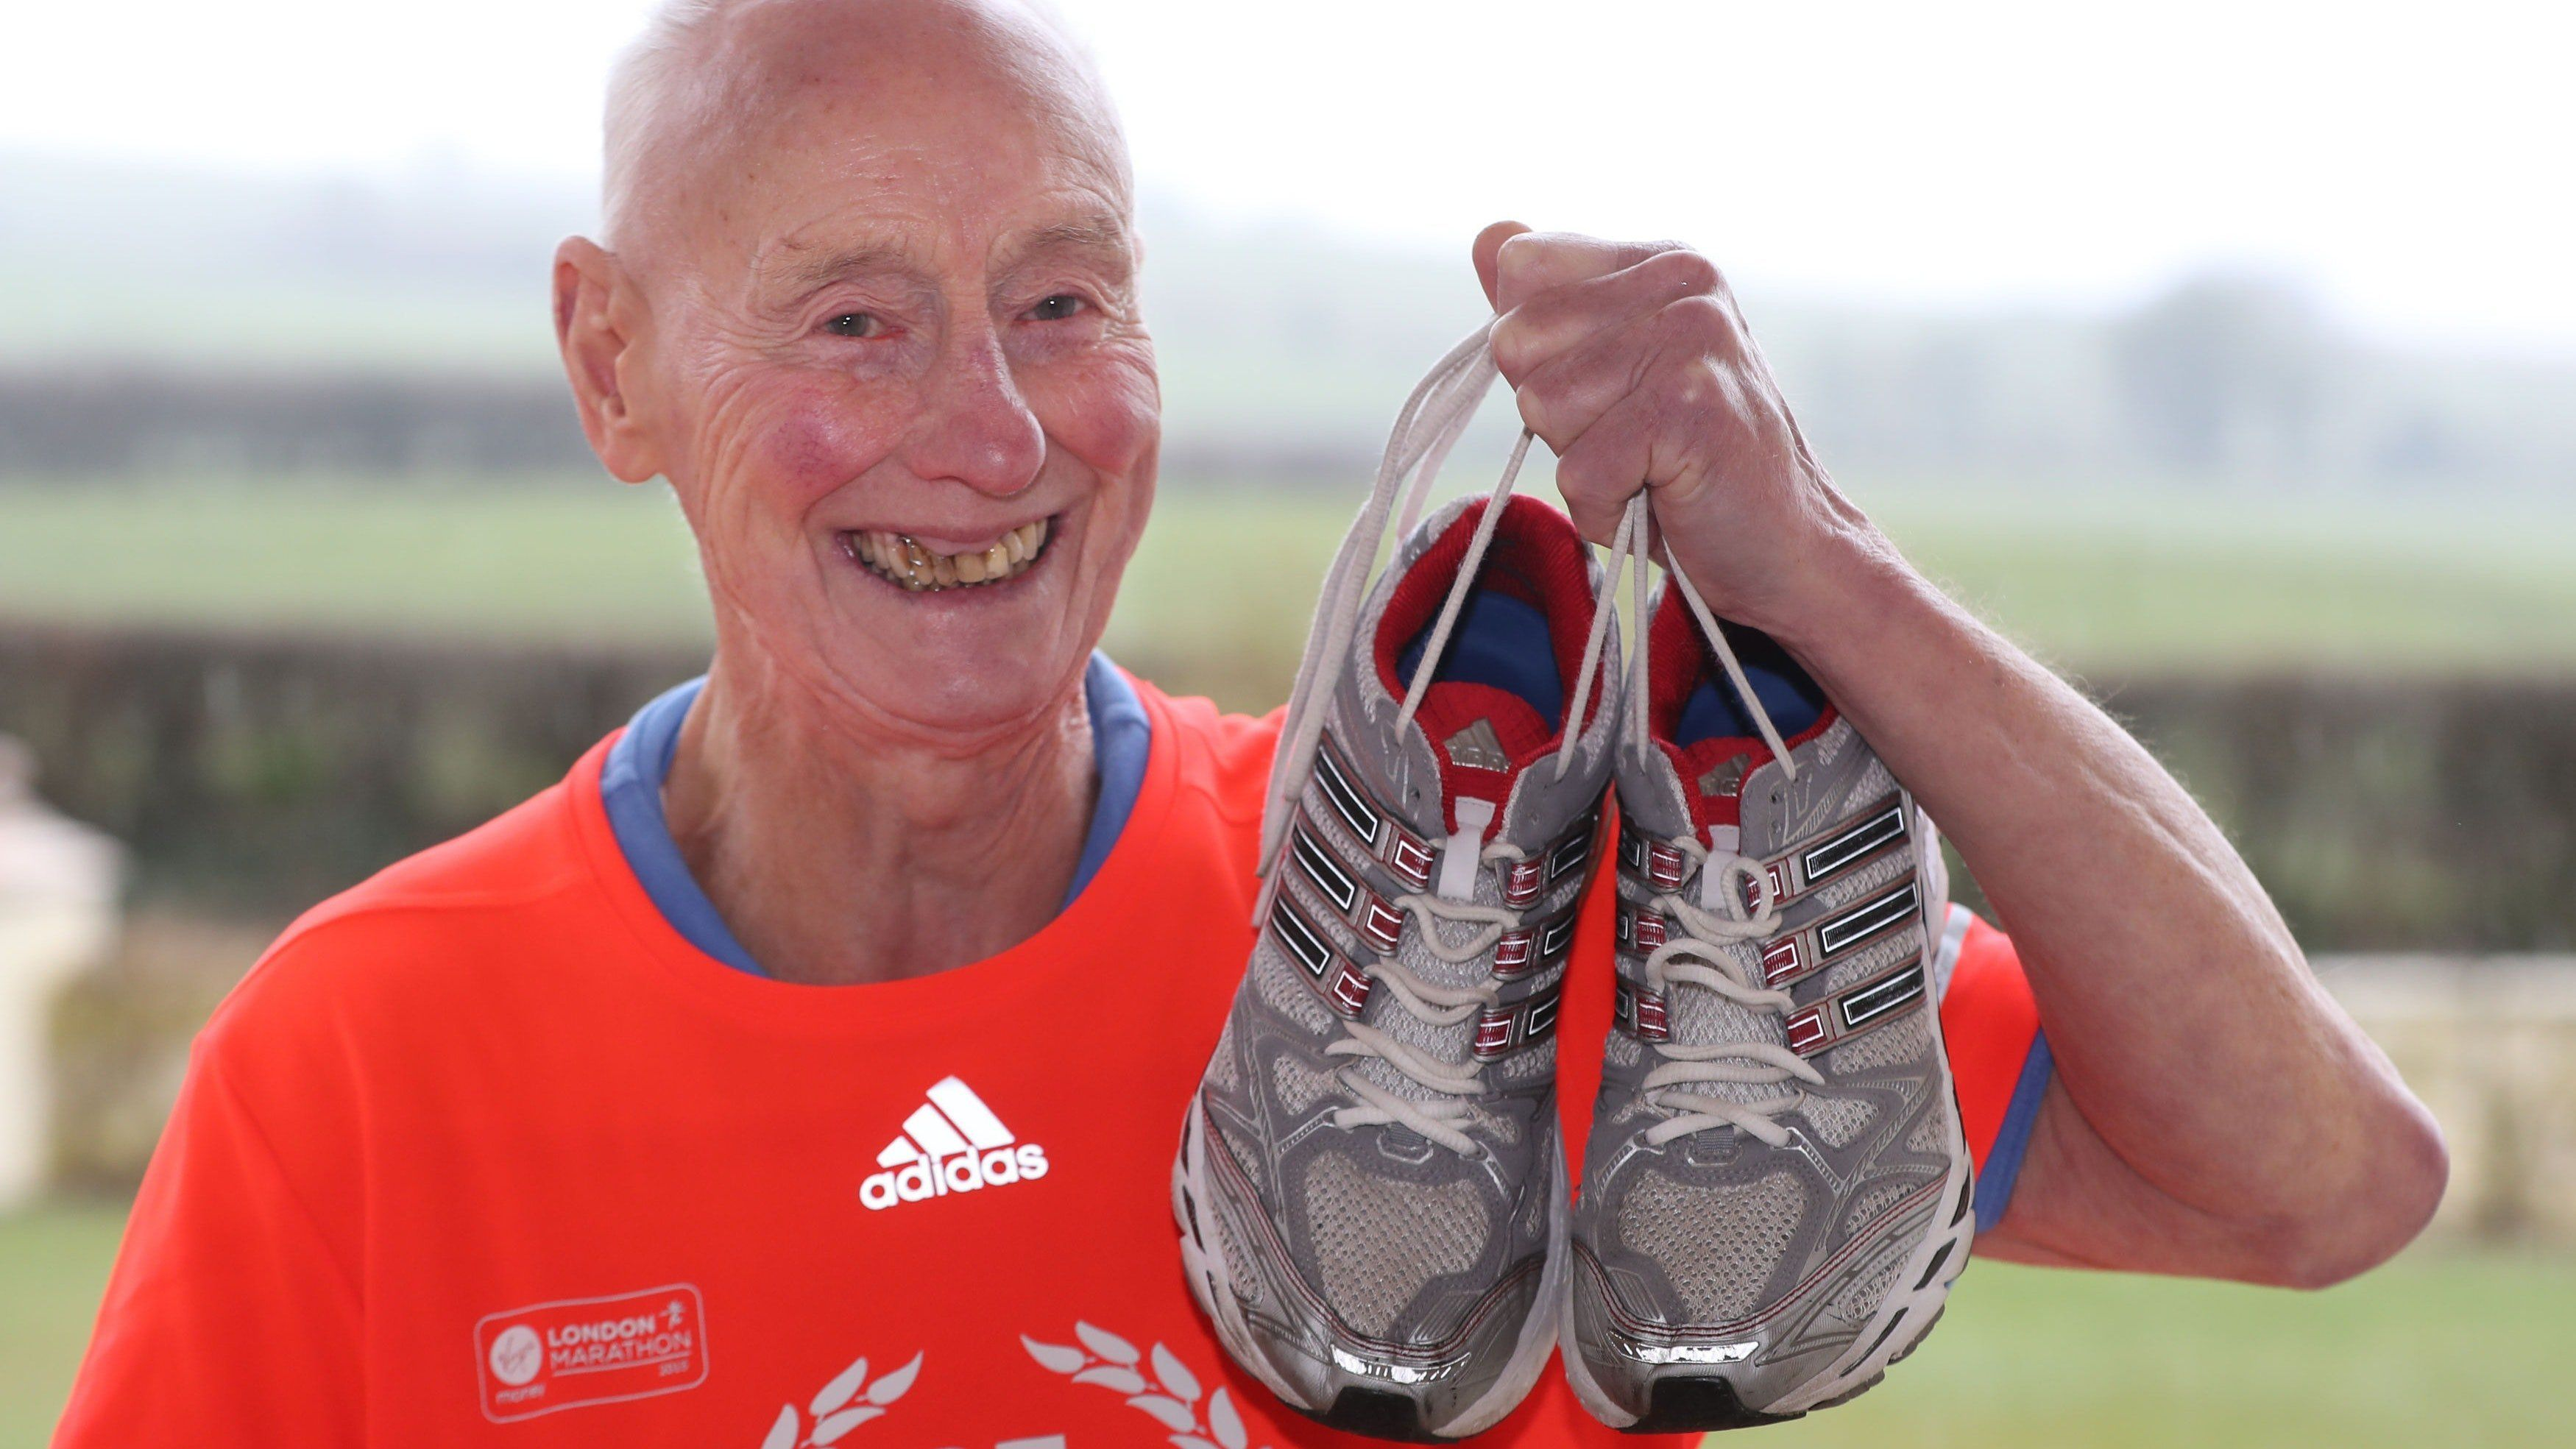 This 85-Year-Old Has Run Every London Marathon - And He's Not Stopping